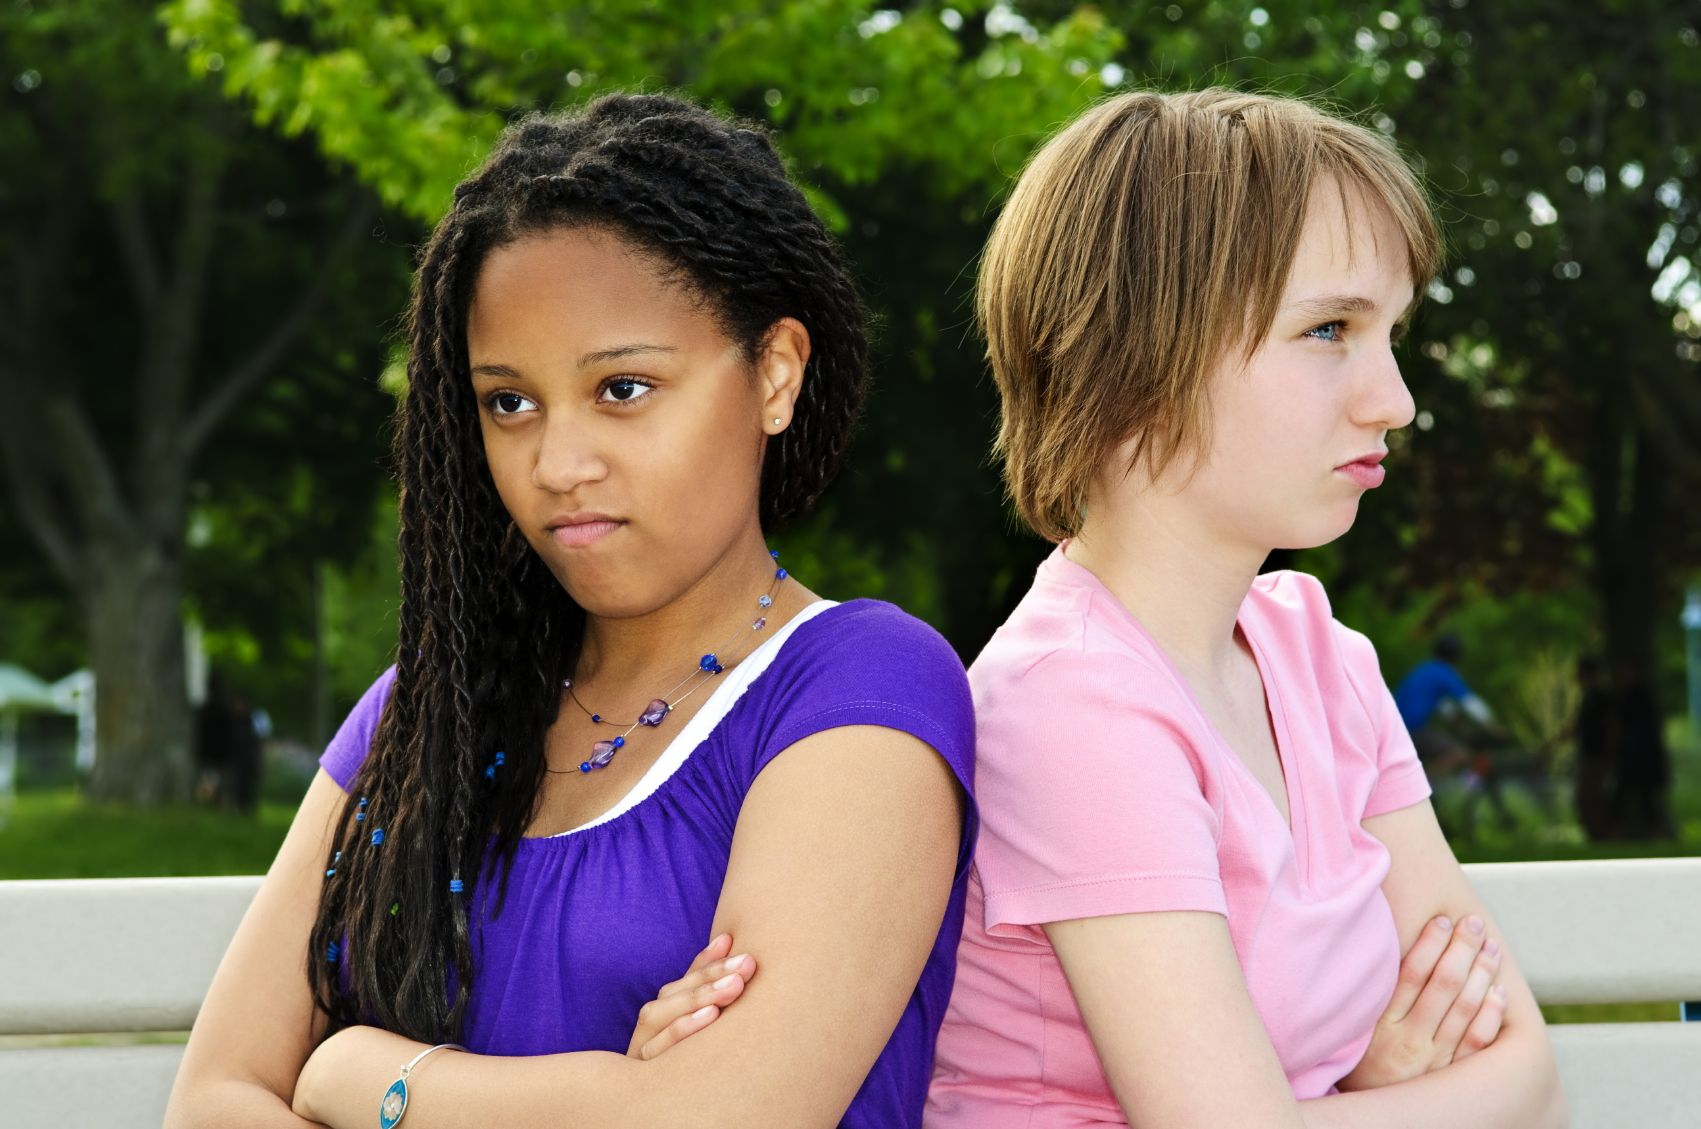 How To Tell The Difference Between Conflict And Bullying